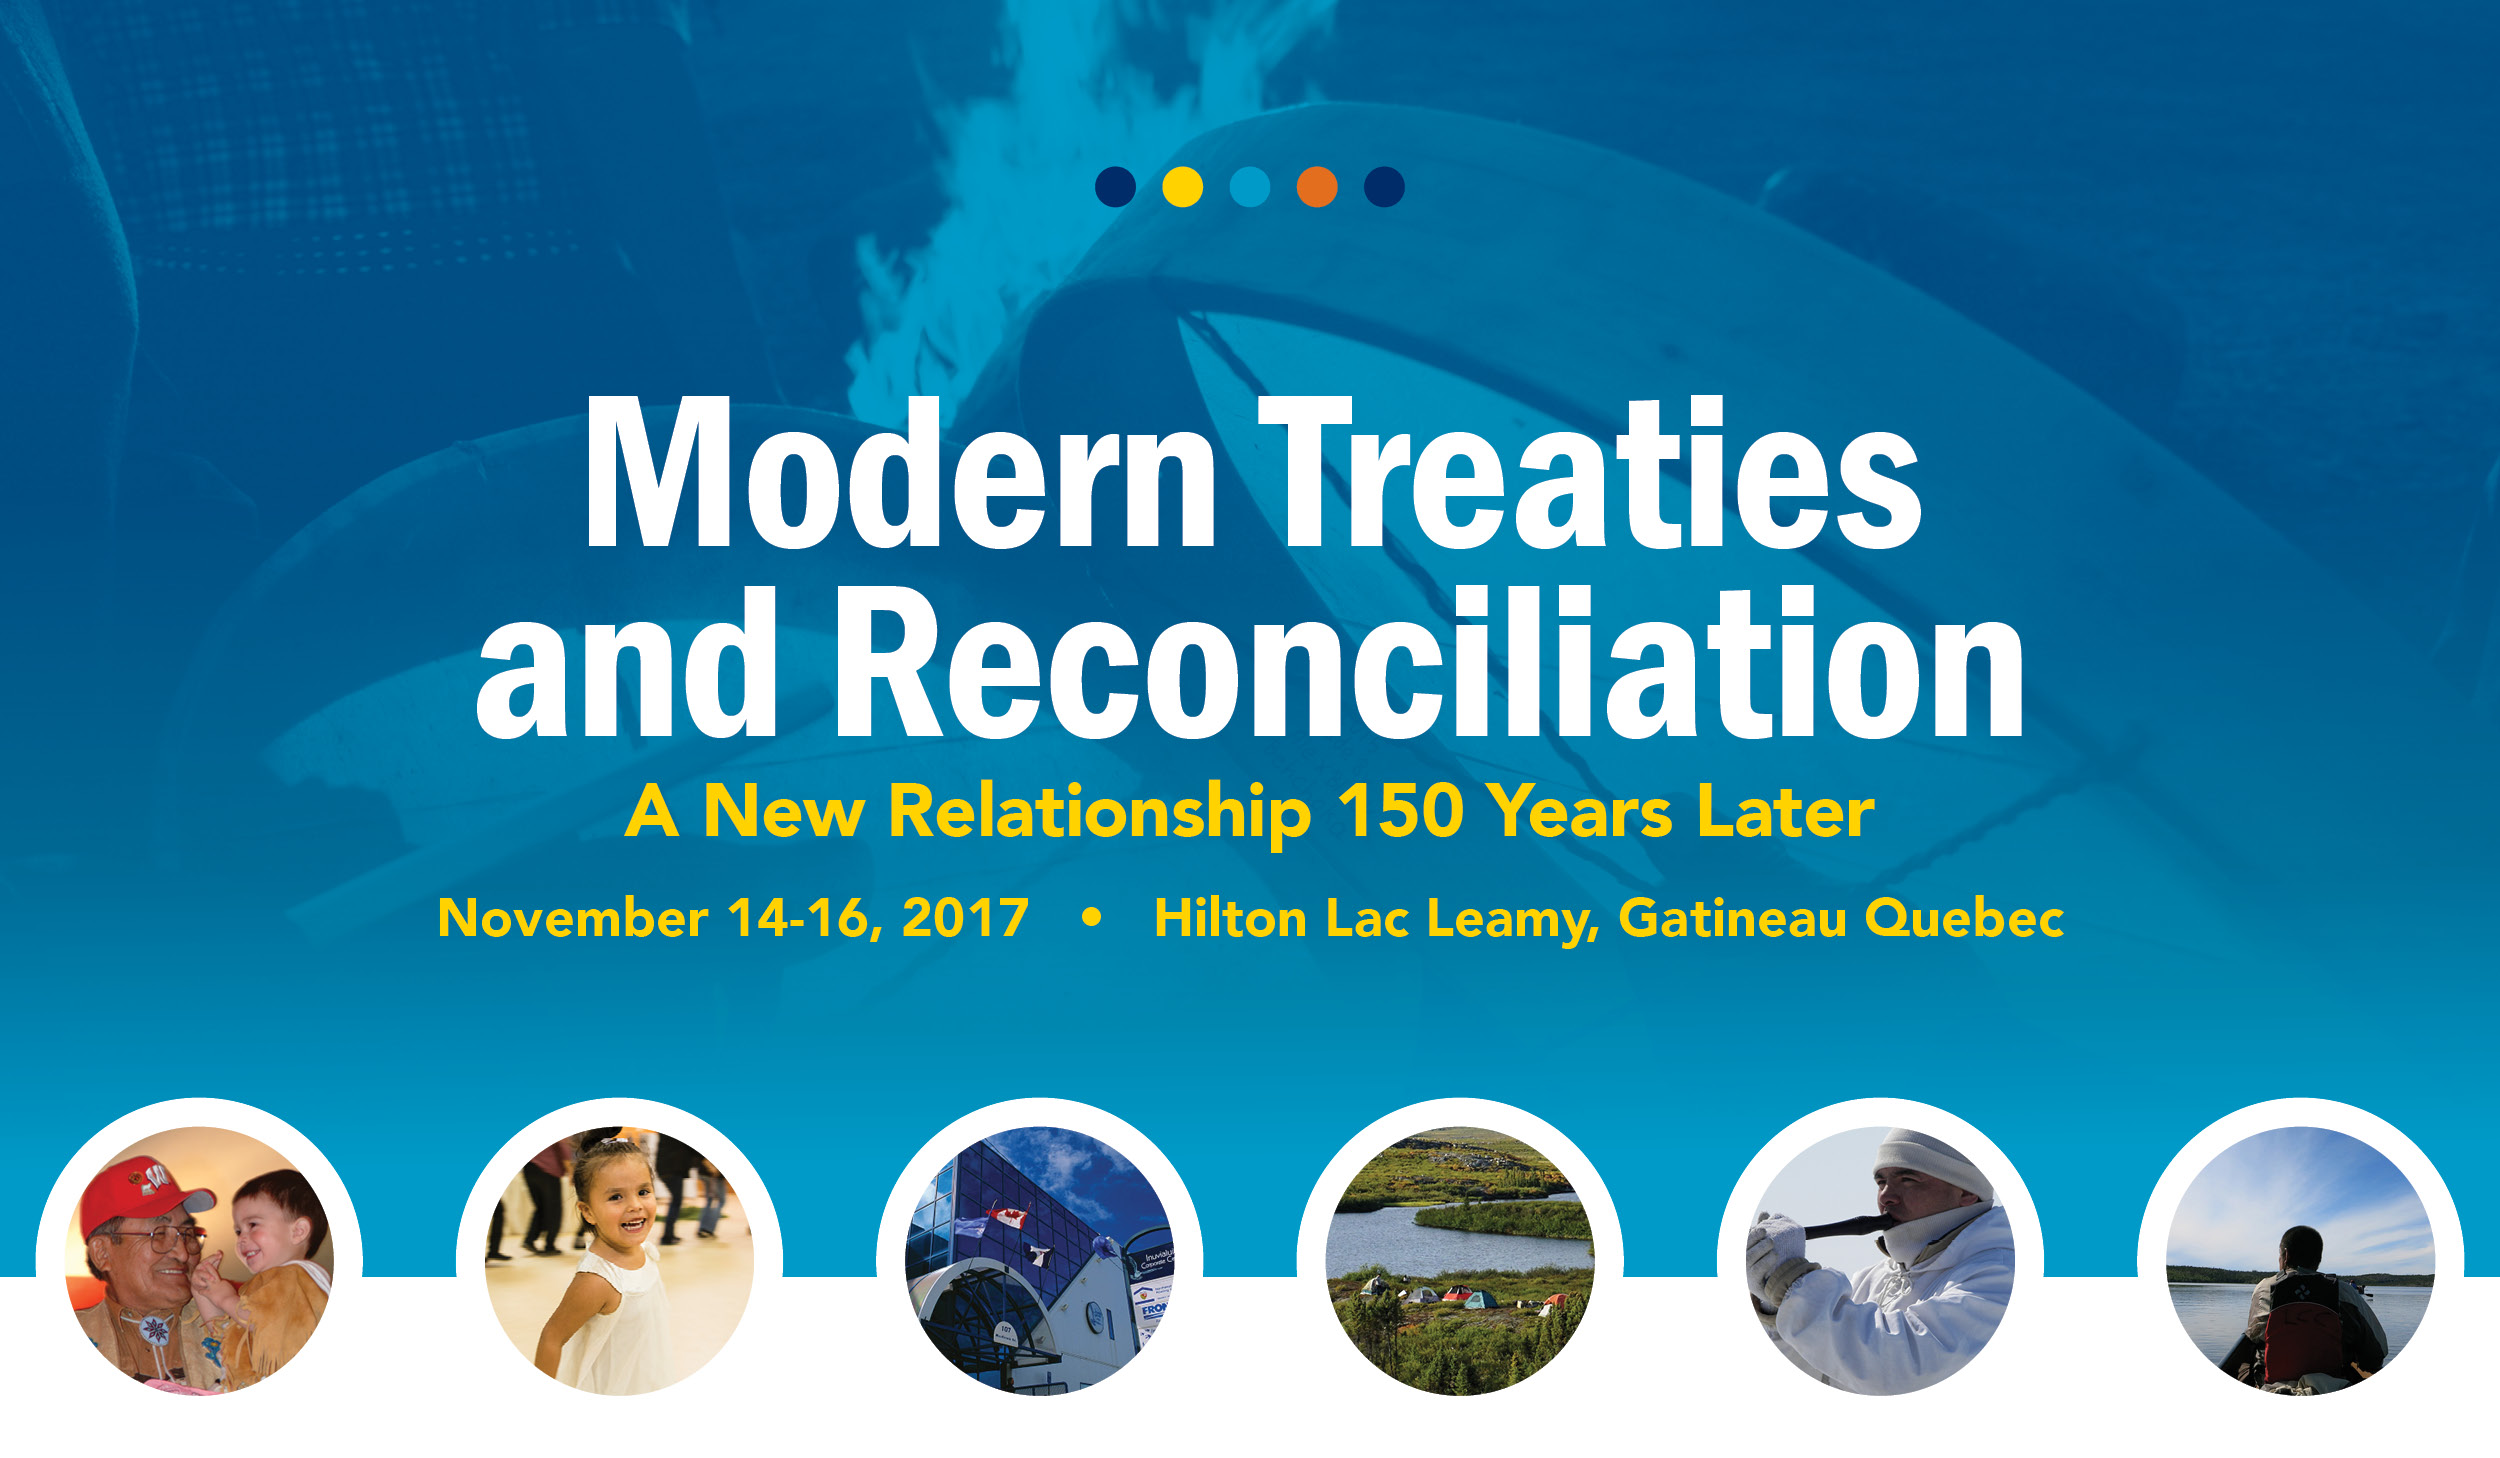 Modern Treaties and Reconciliation: A New Relationship 150 Years Later